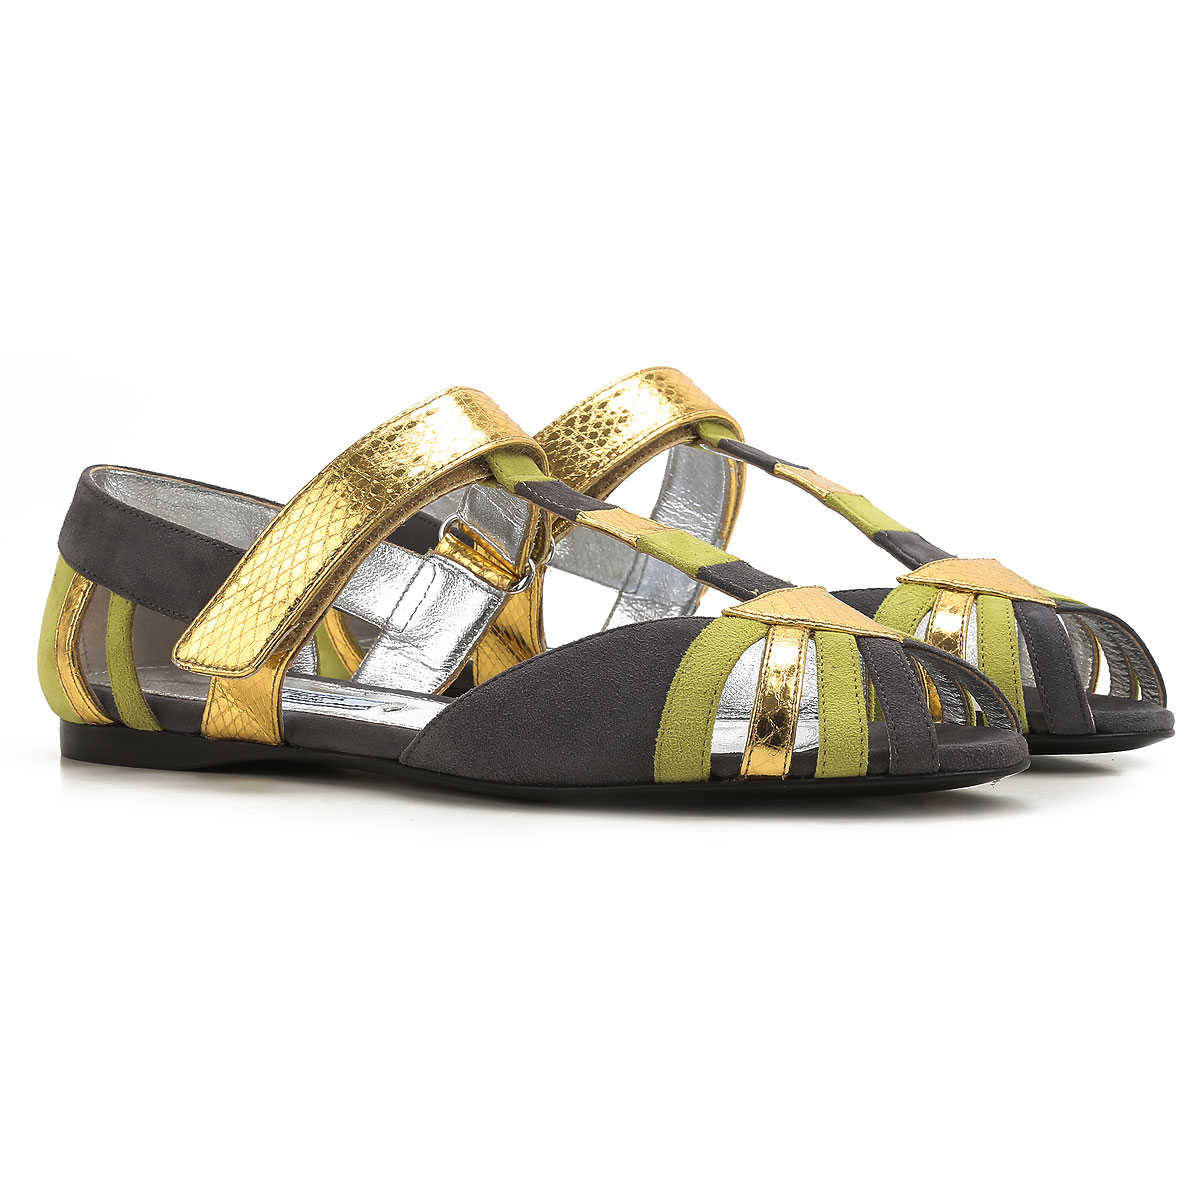 Prada Sandals for Women On Sale in Outlet Grey SE - GOOFASH